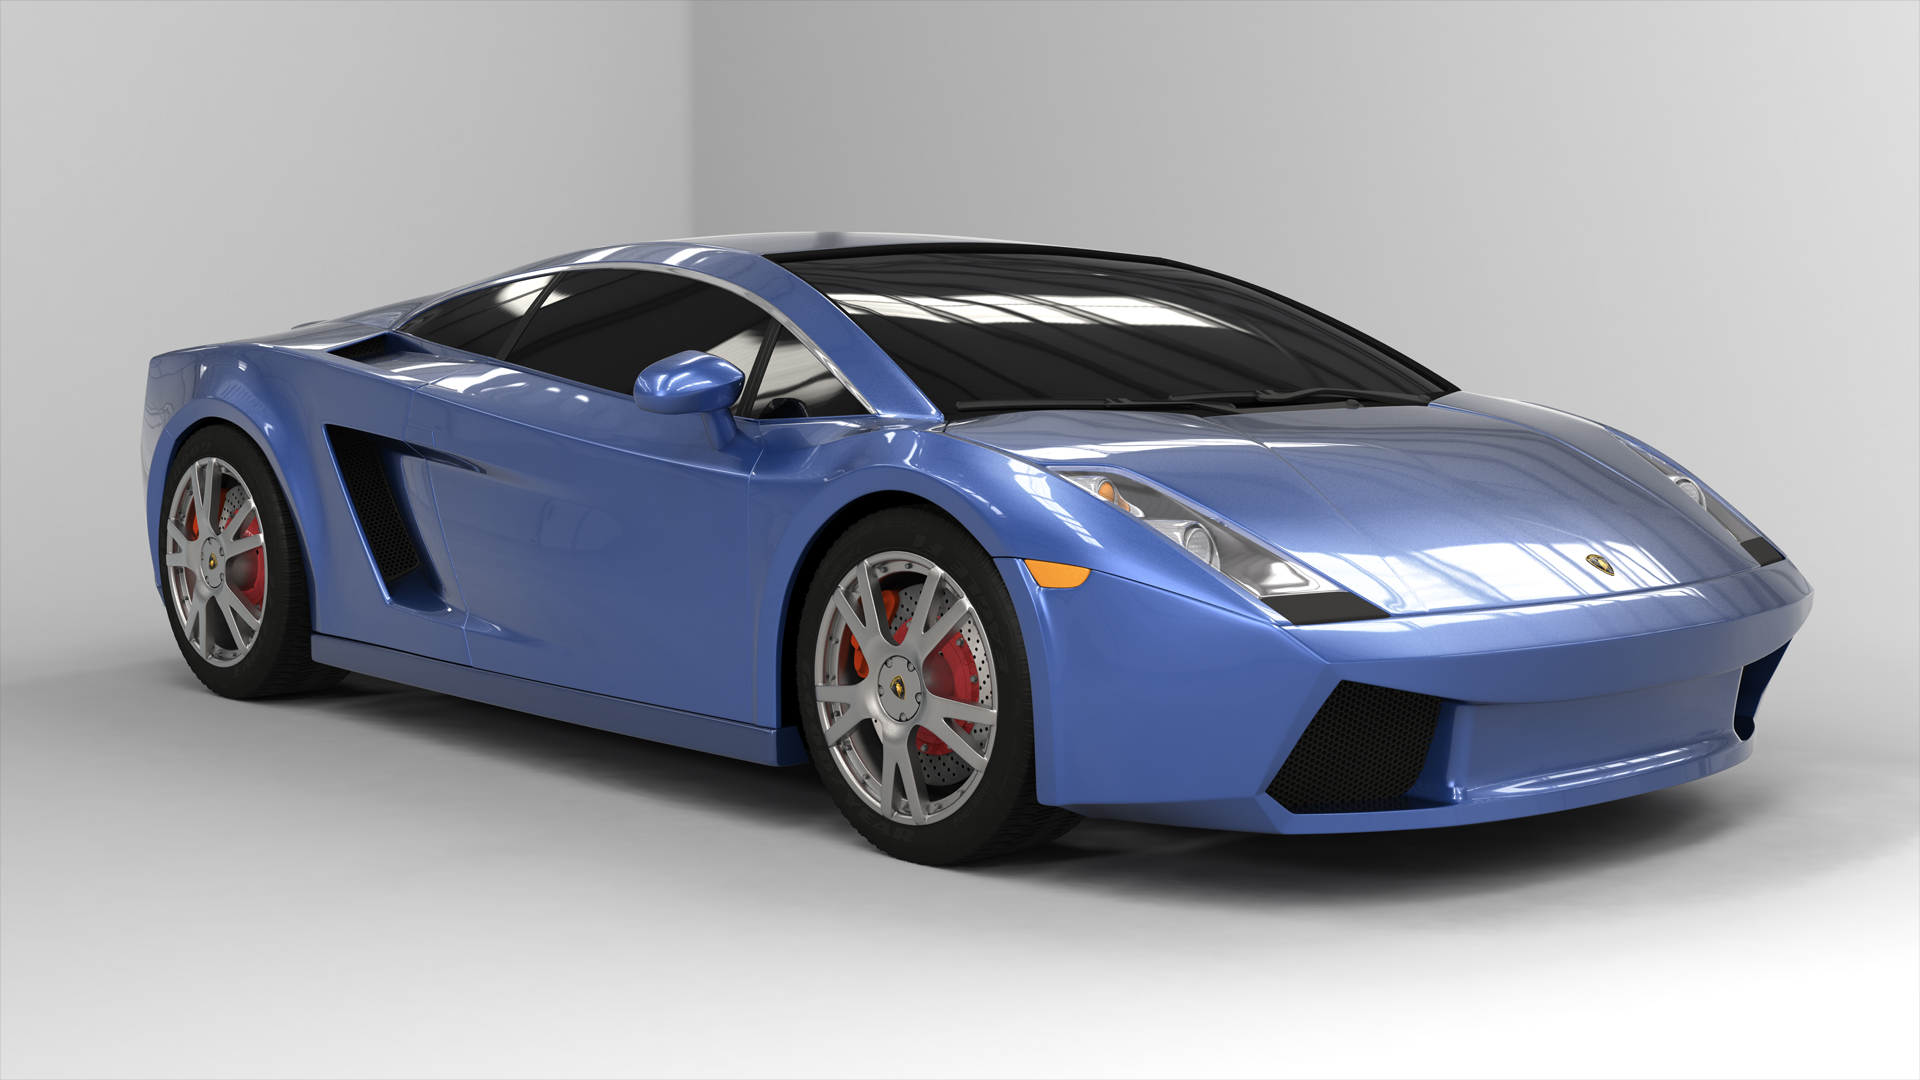 Lamborghini gallardo foundry community the modeling was done in both maya and modo while the texturing and render is pure modo this took about 3 weeks to complete malvernweather Image collections